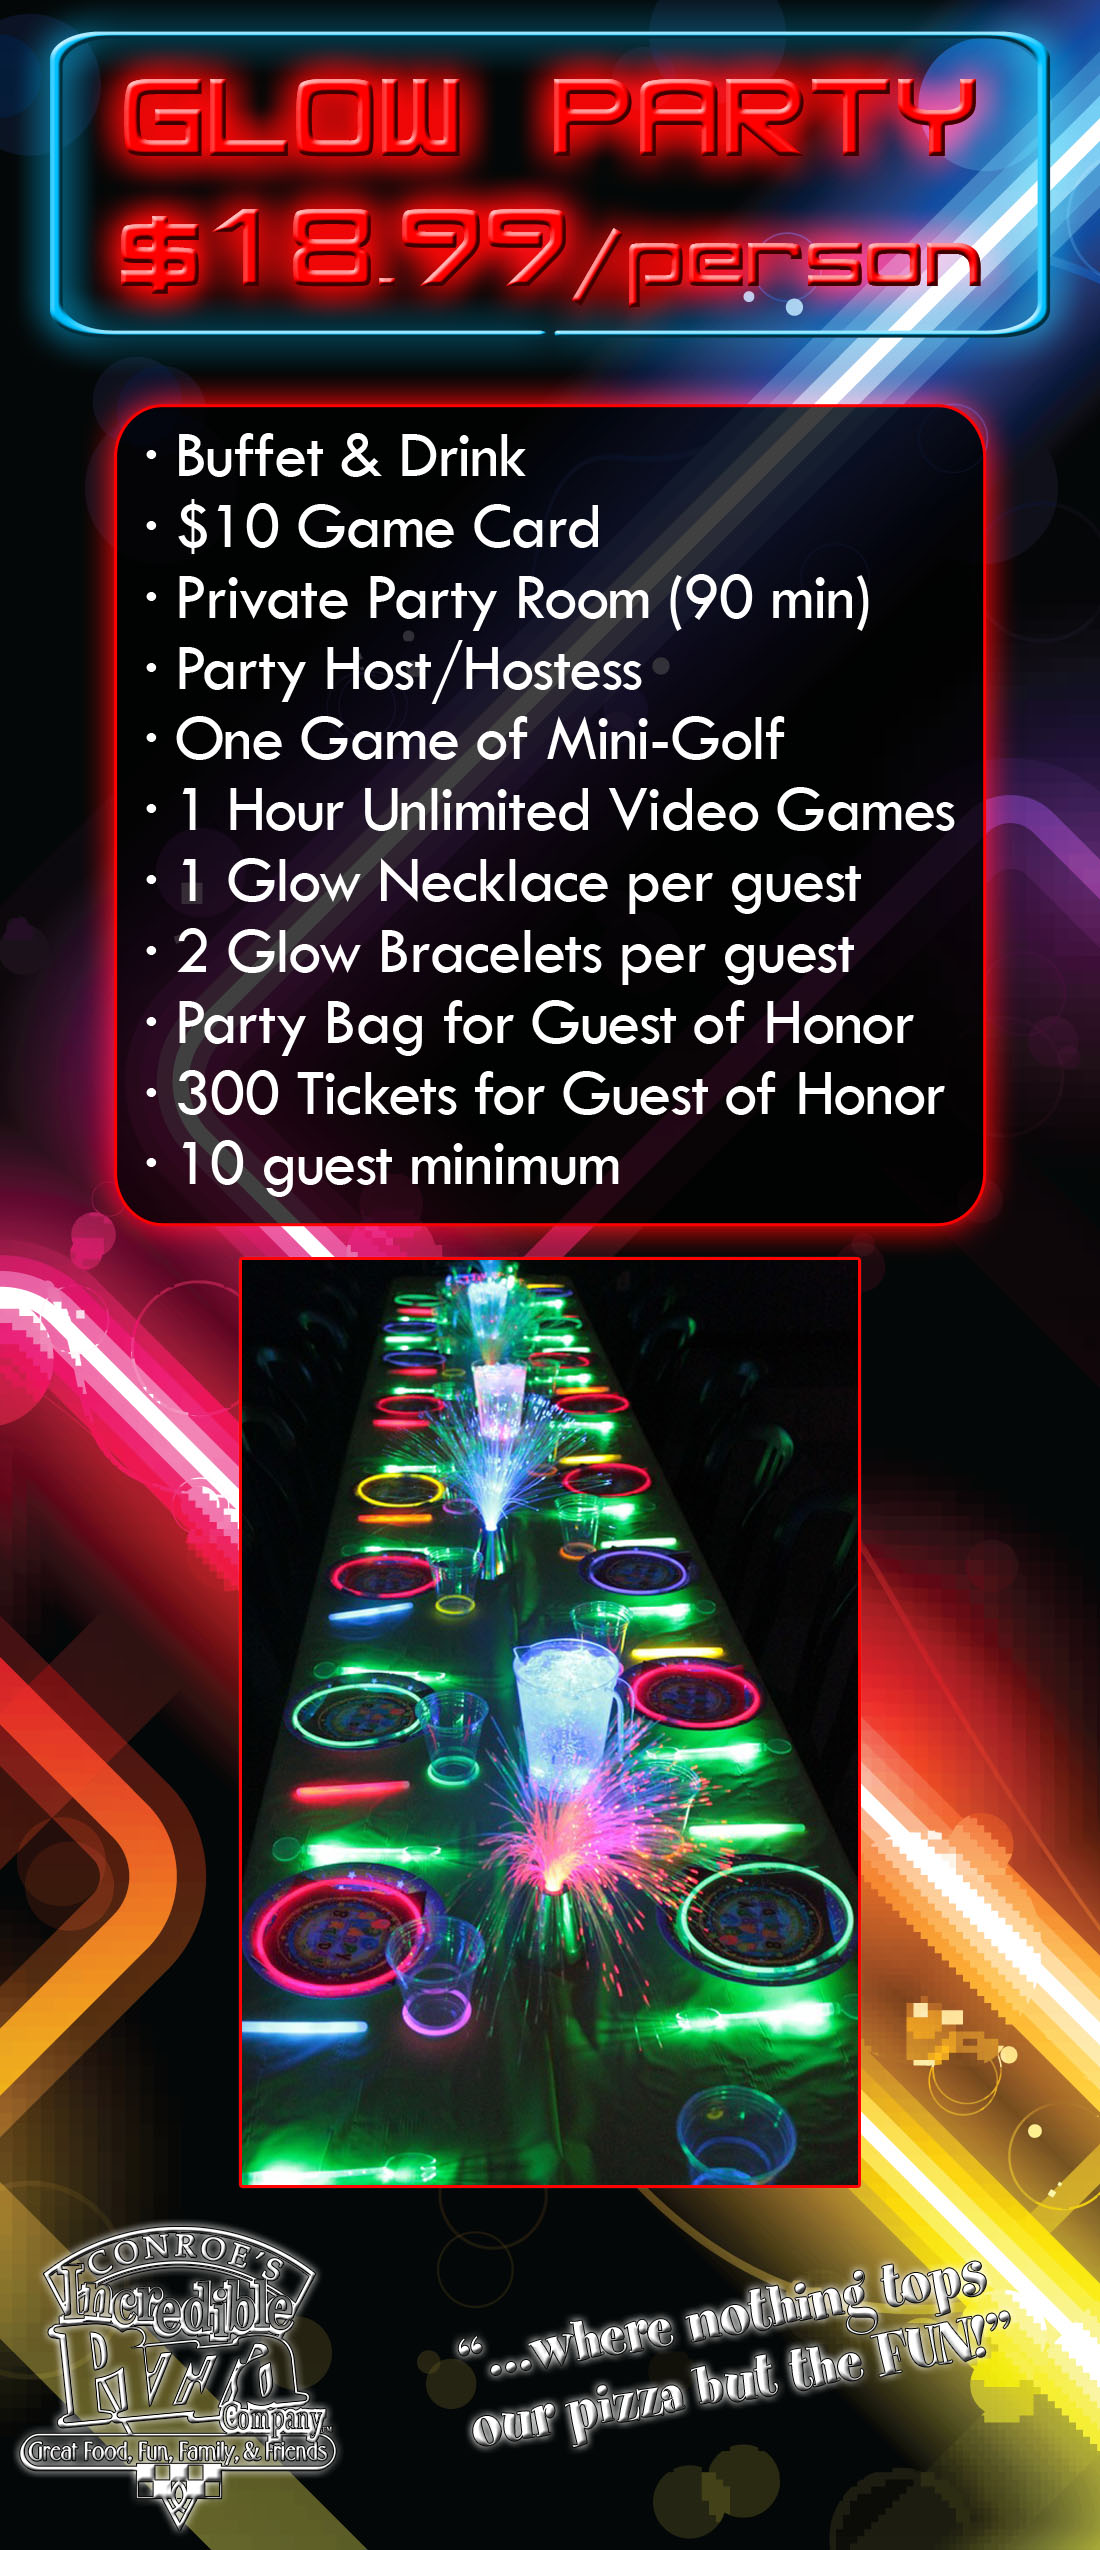 new glow zone parties incredible pizza company enjoy our huge